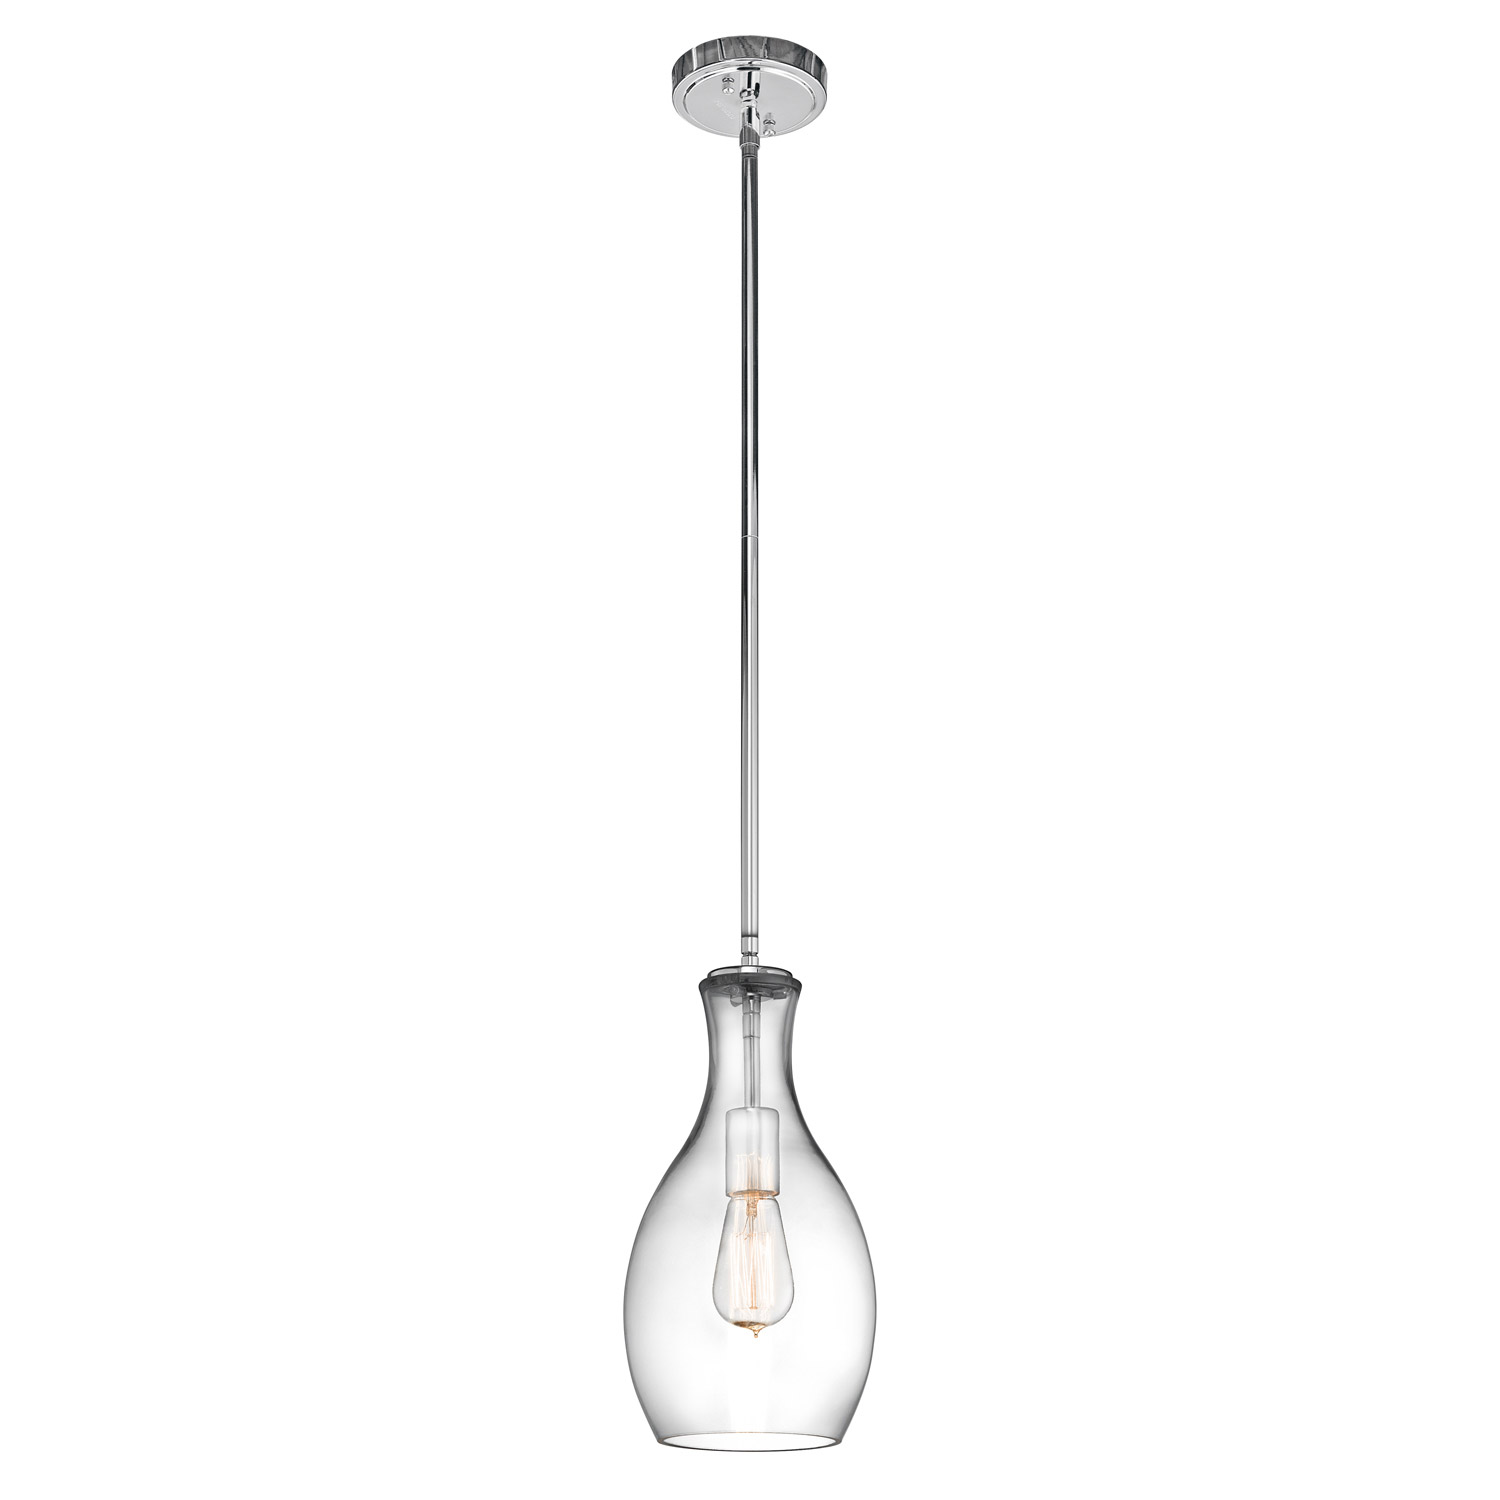 Kichler 42456chclr everly mini pendant aloadofball Image collections